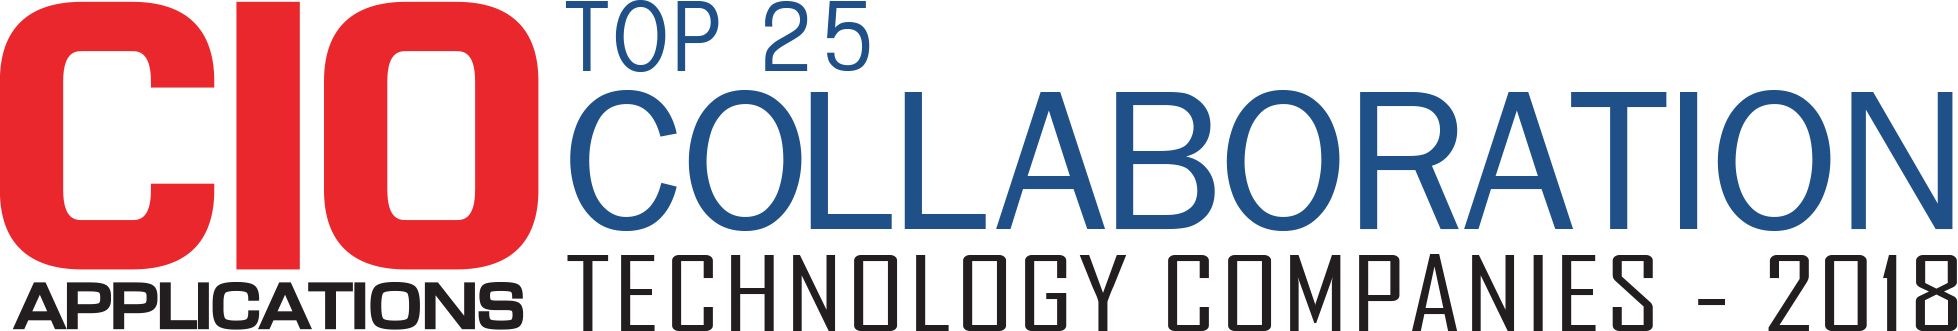 Top 25 Collaboration Technology Companies - 2018